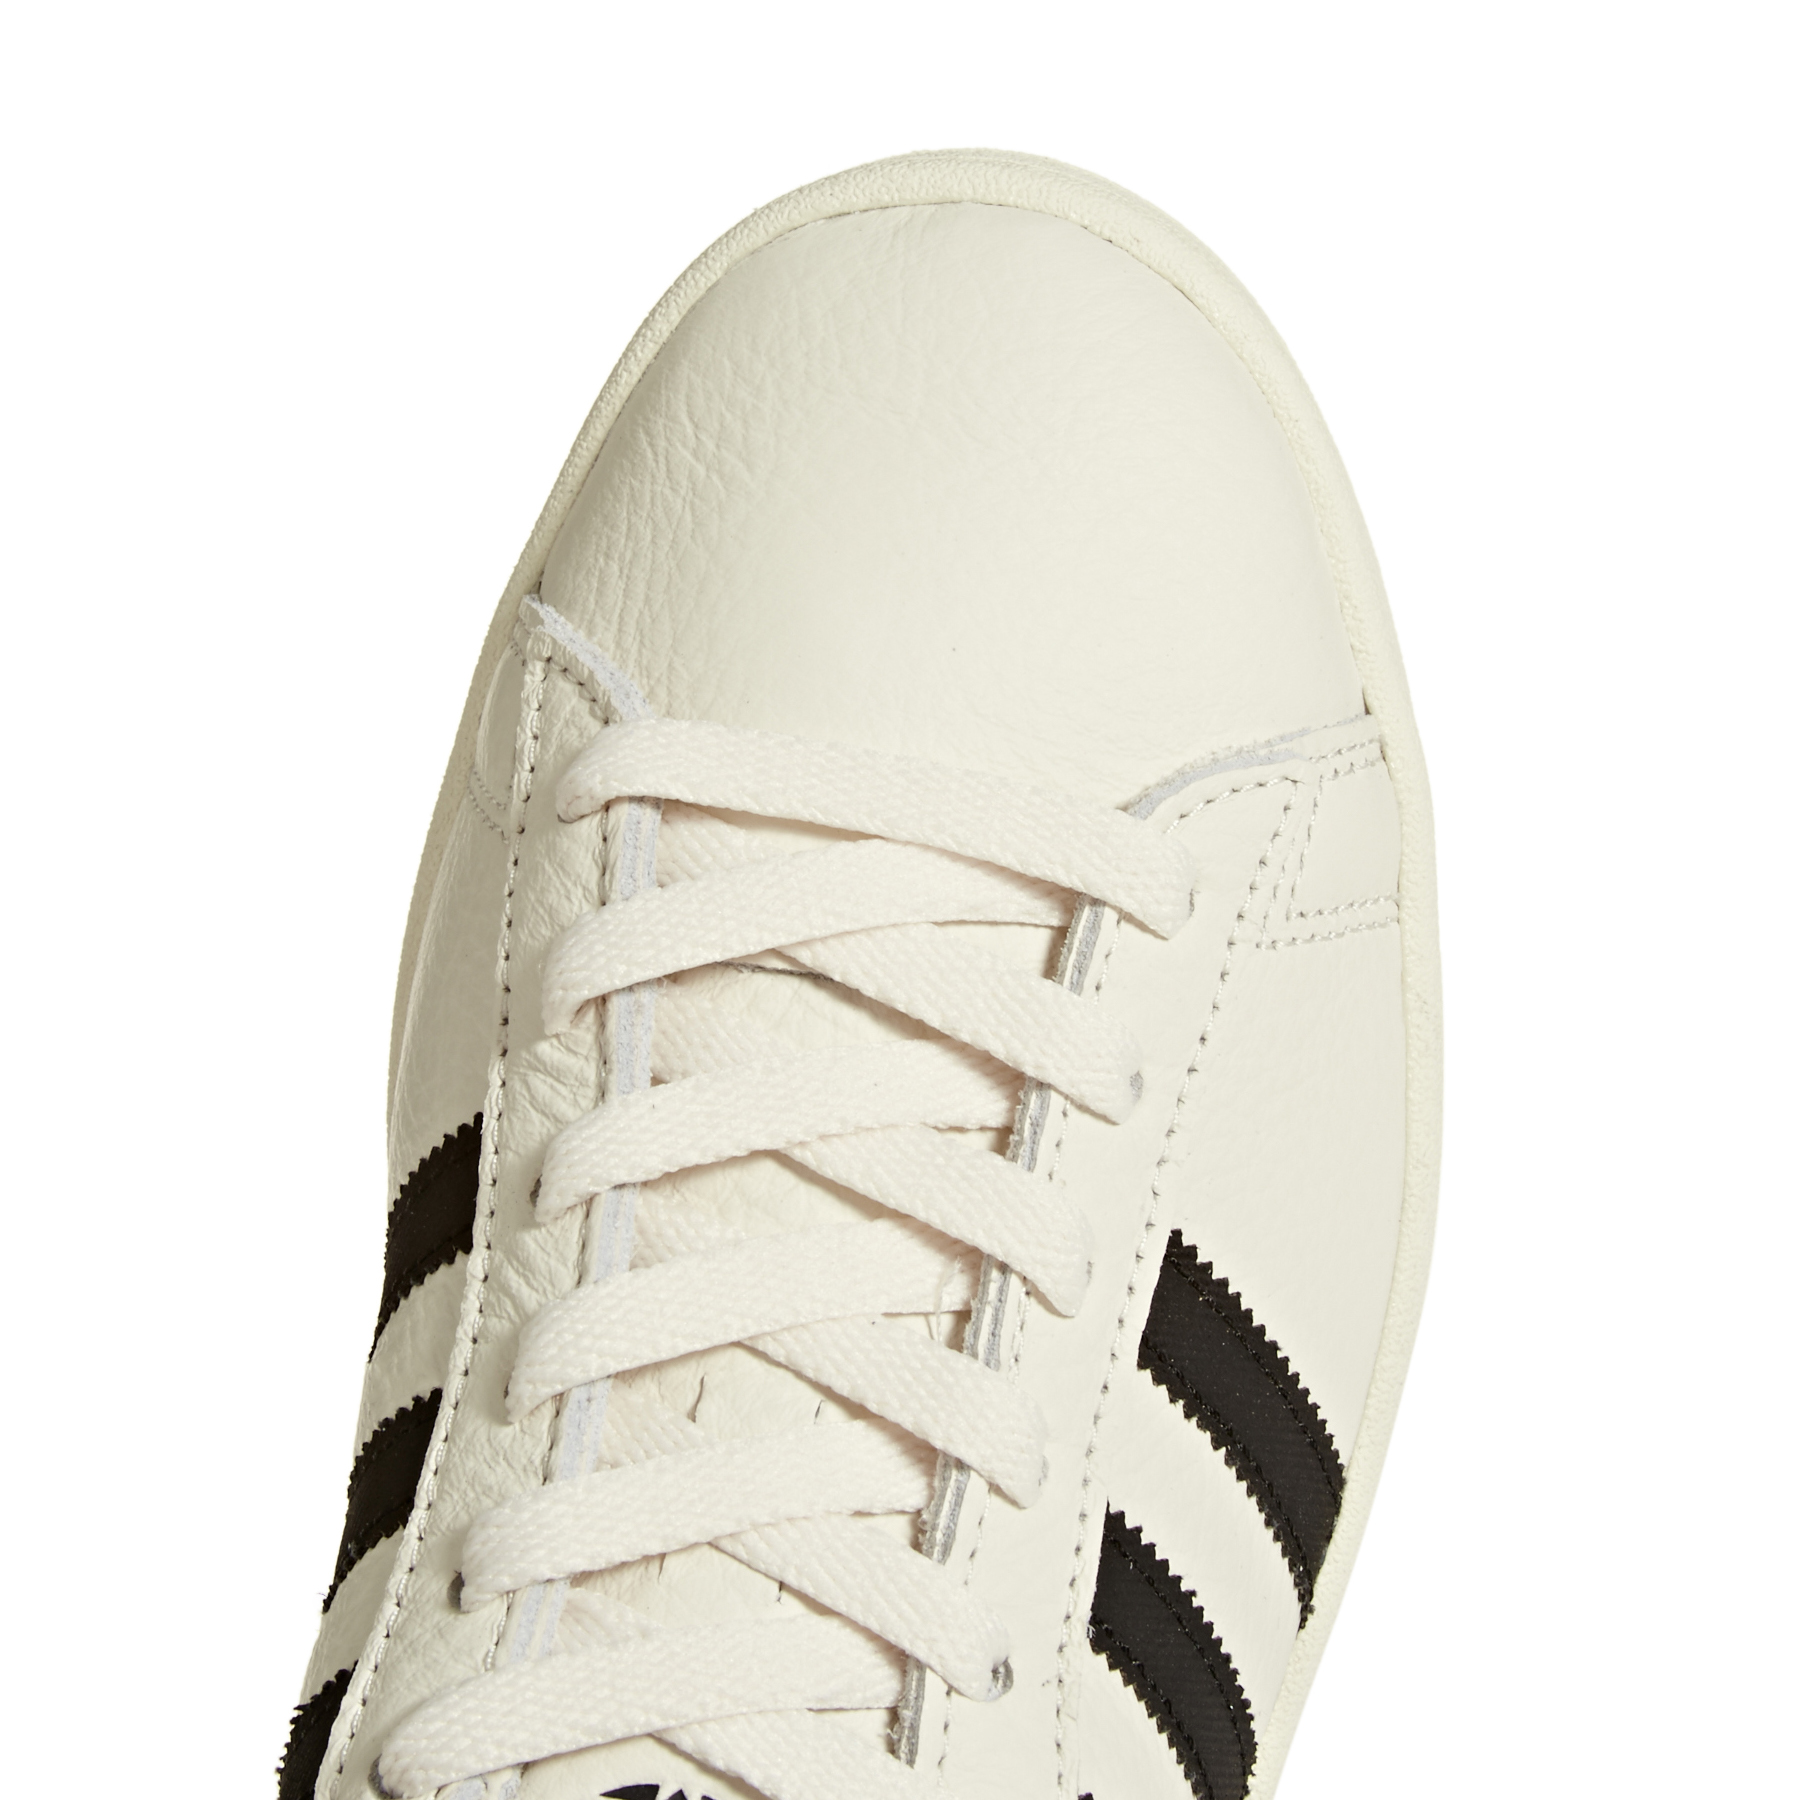 Details about Adidas Campus Mens Suede Leather Lace Up Trainers In Black White Size UK 6 12